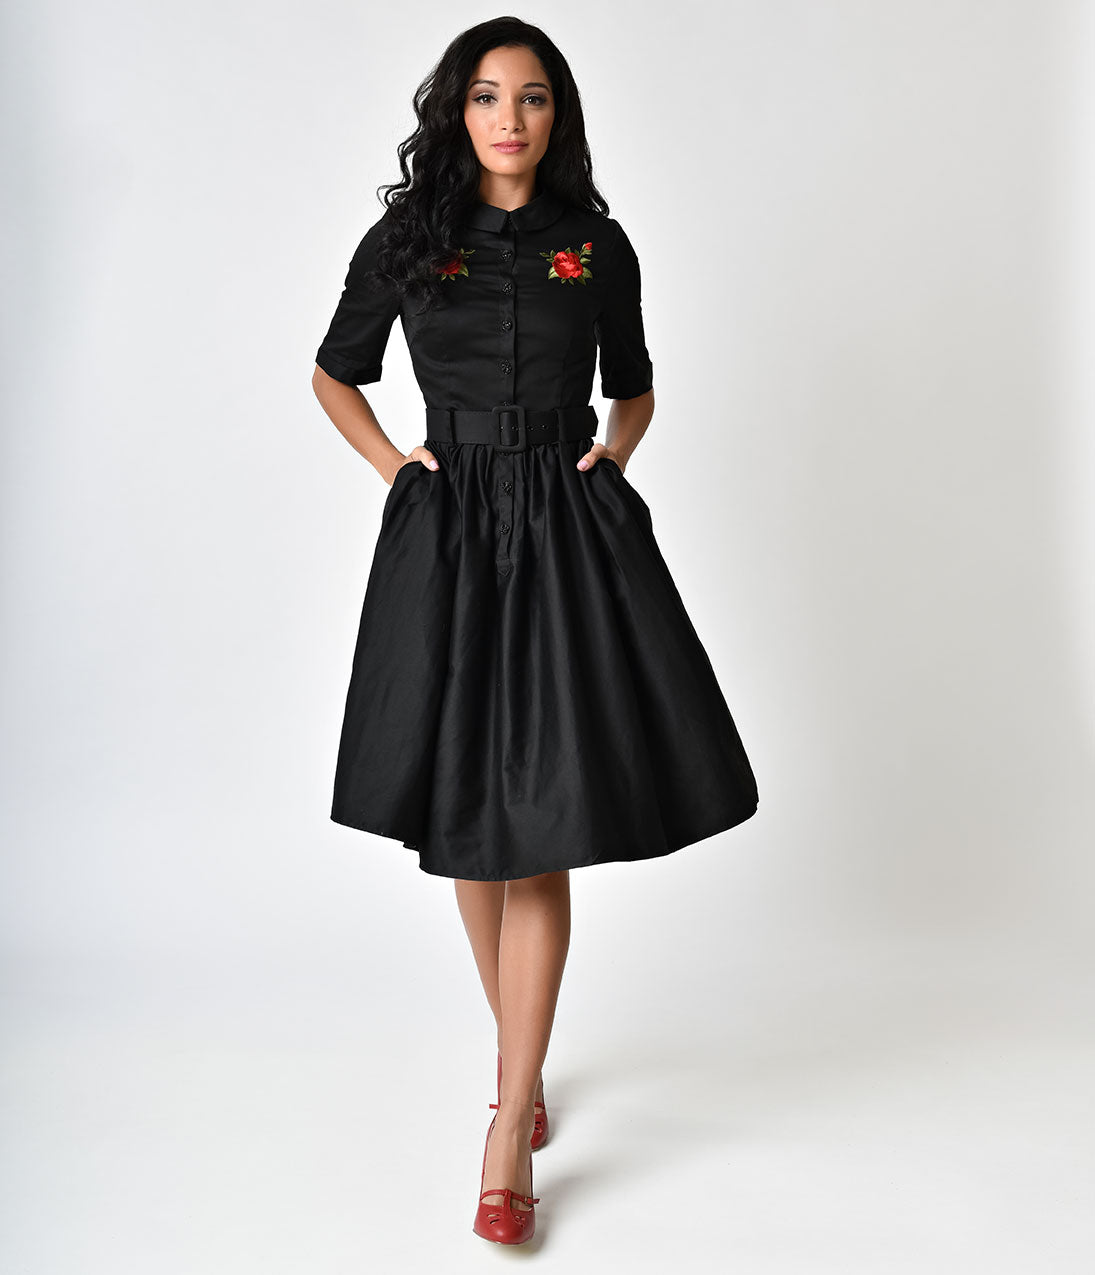 1940s & 1950s Style Shirt Dresses, Shirtwaist Dresses Collectif 1950s Style Black Rose Aria Swing Shirtdress $74.00 AT vintagedancer.com